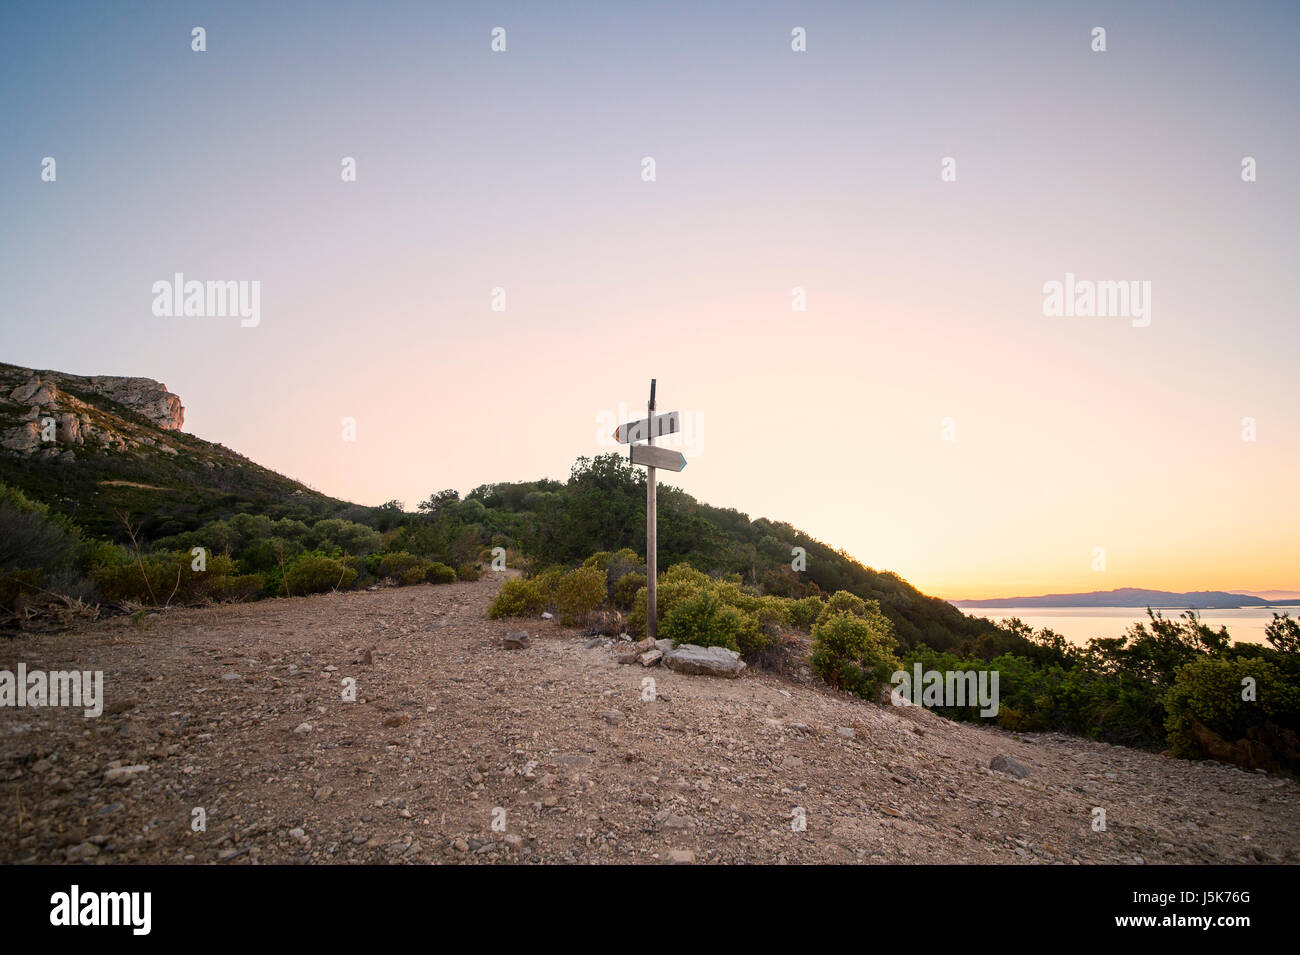 Rural scenic landscape with crossroad on hill in forest at sunset. Two different directions. Concept of choose the - Stock Image